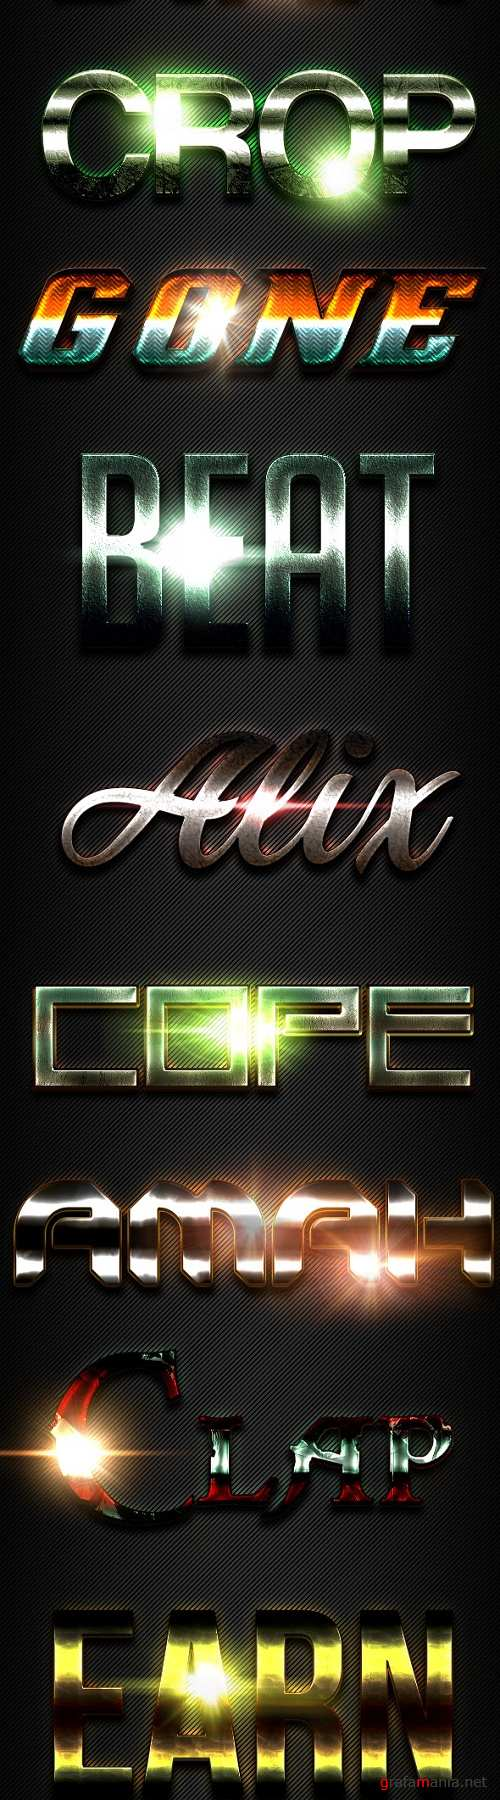 10 Text Effects Vol. 15 - 20903278